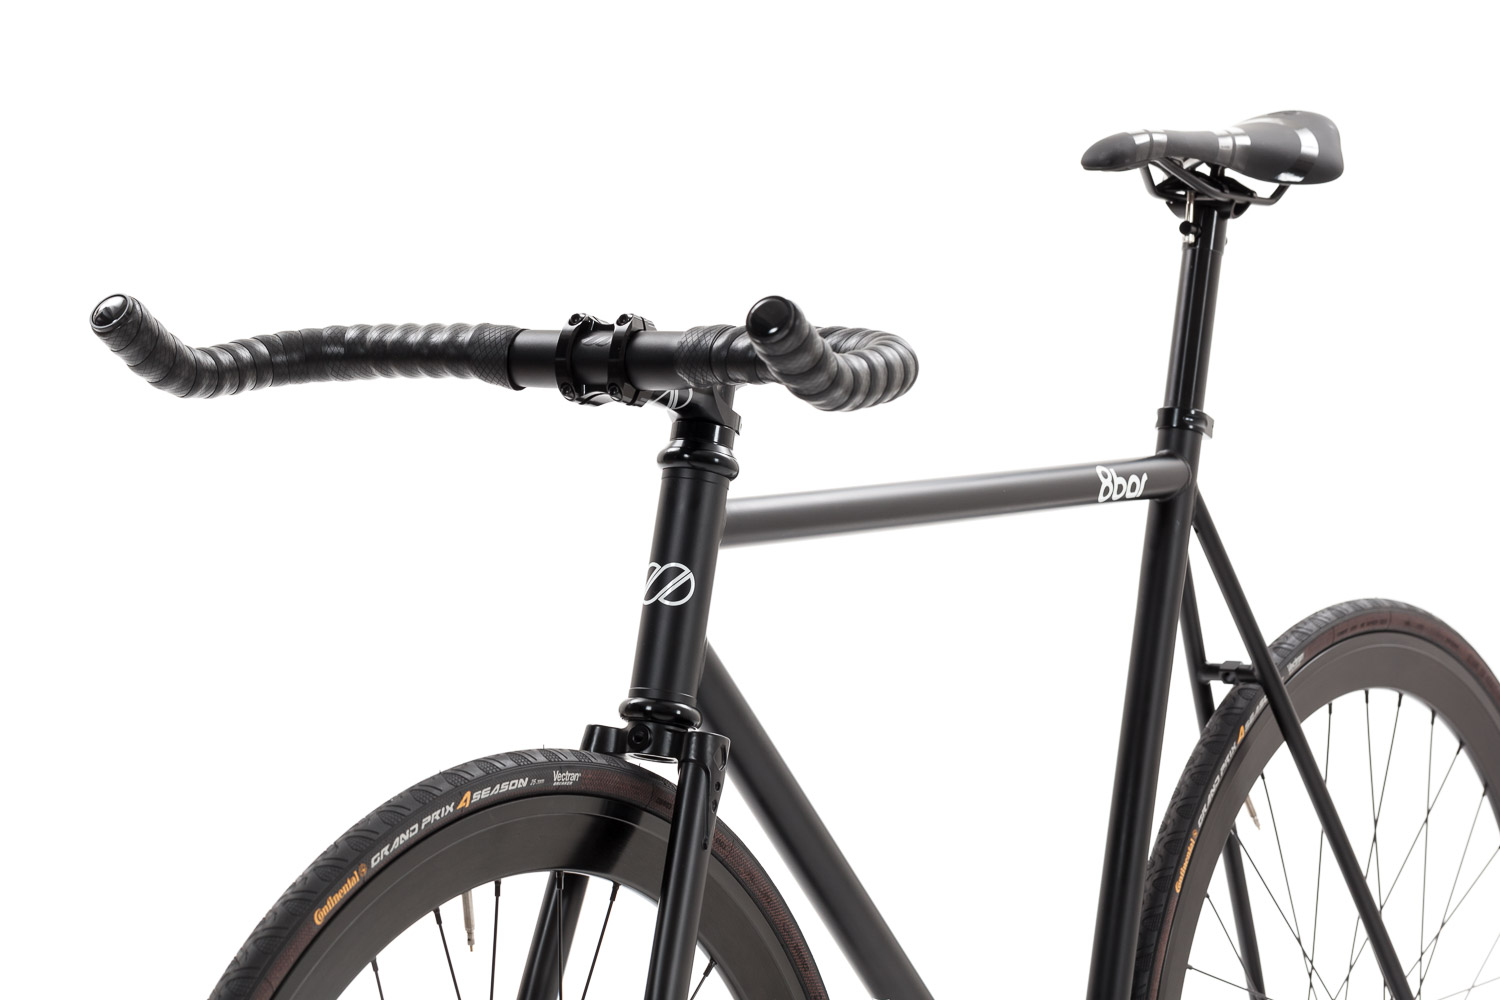 8bar-neukln-pro-black-bullhorn-fixie-fixed-gear-2